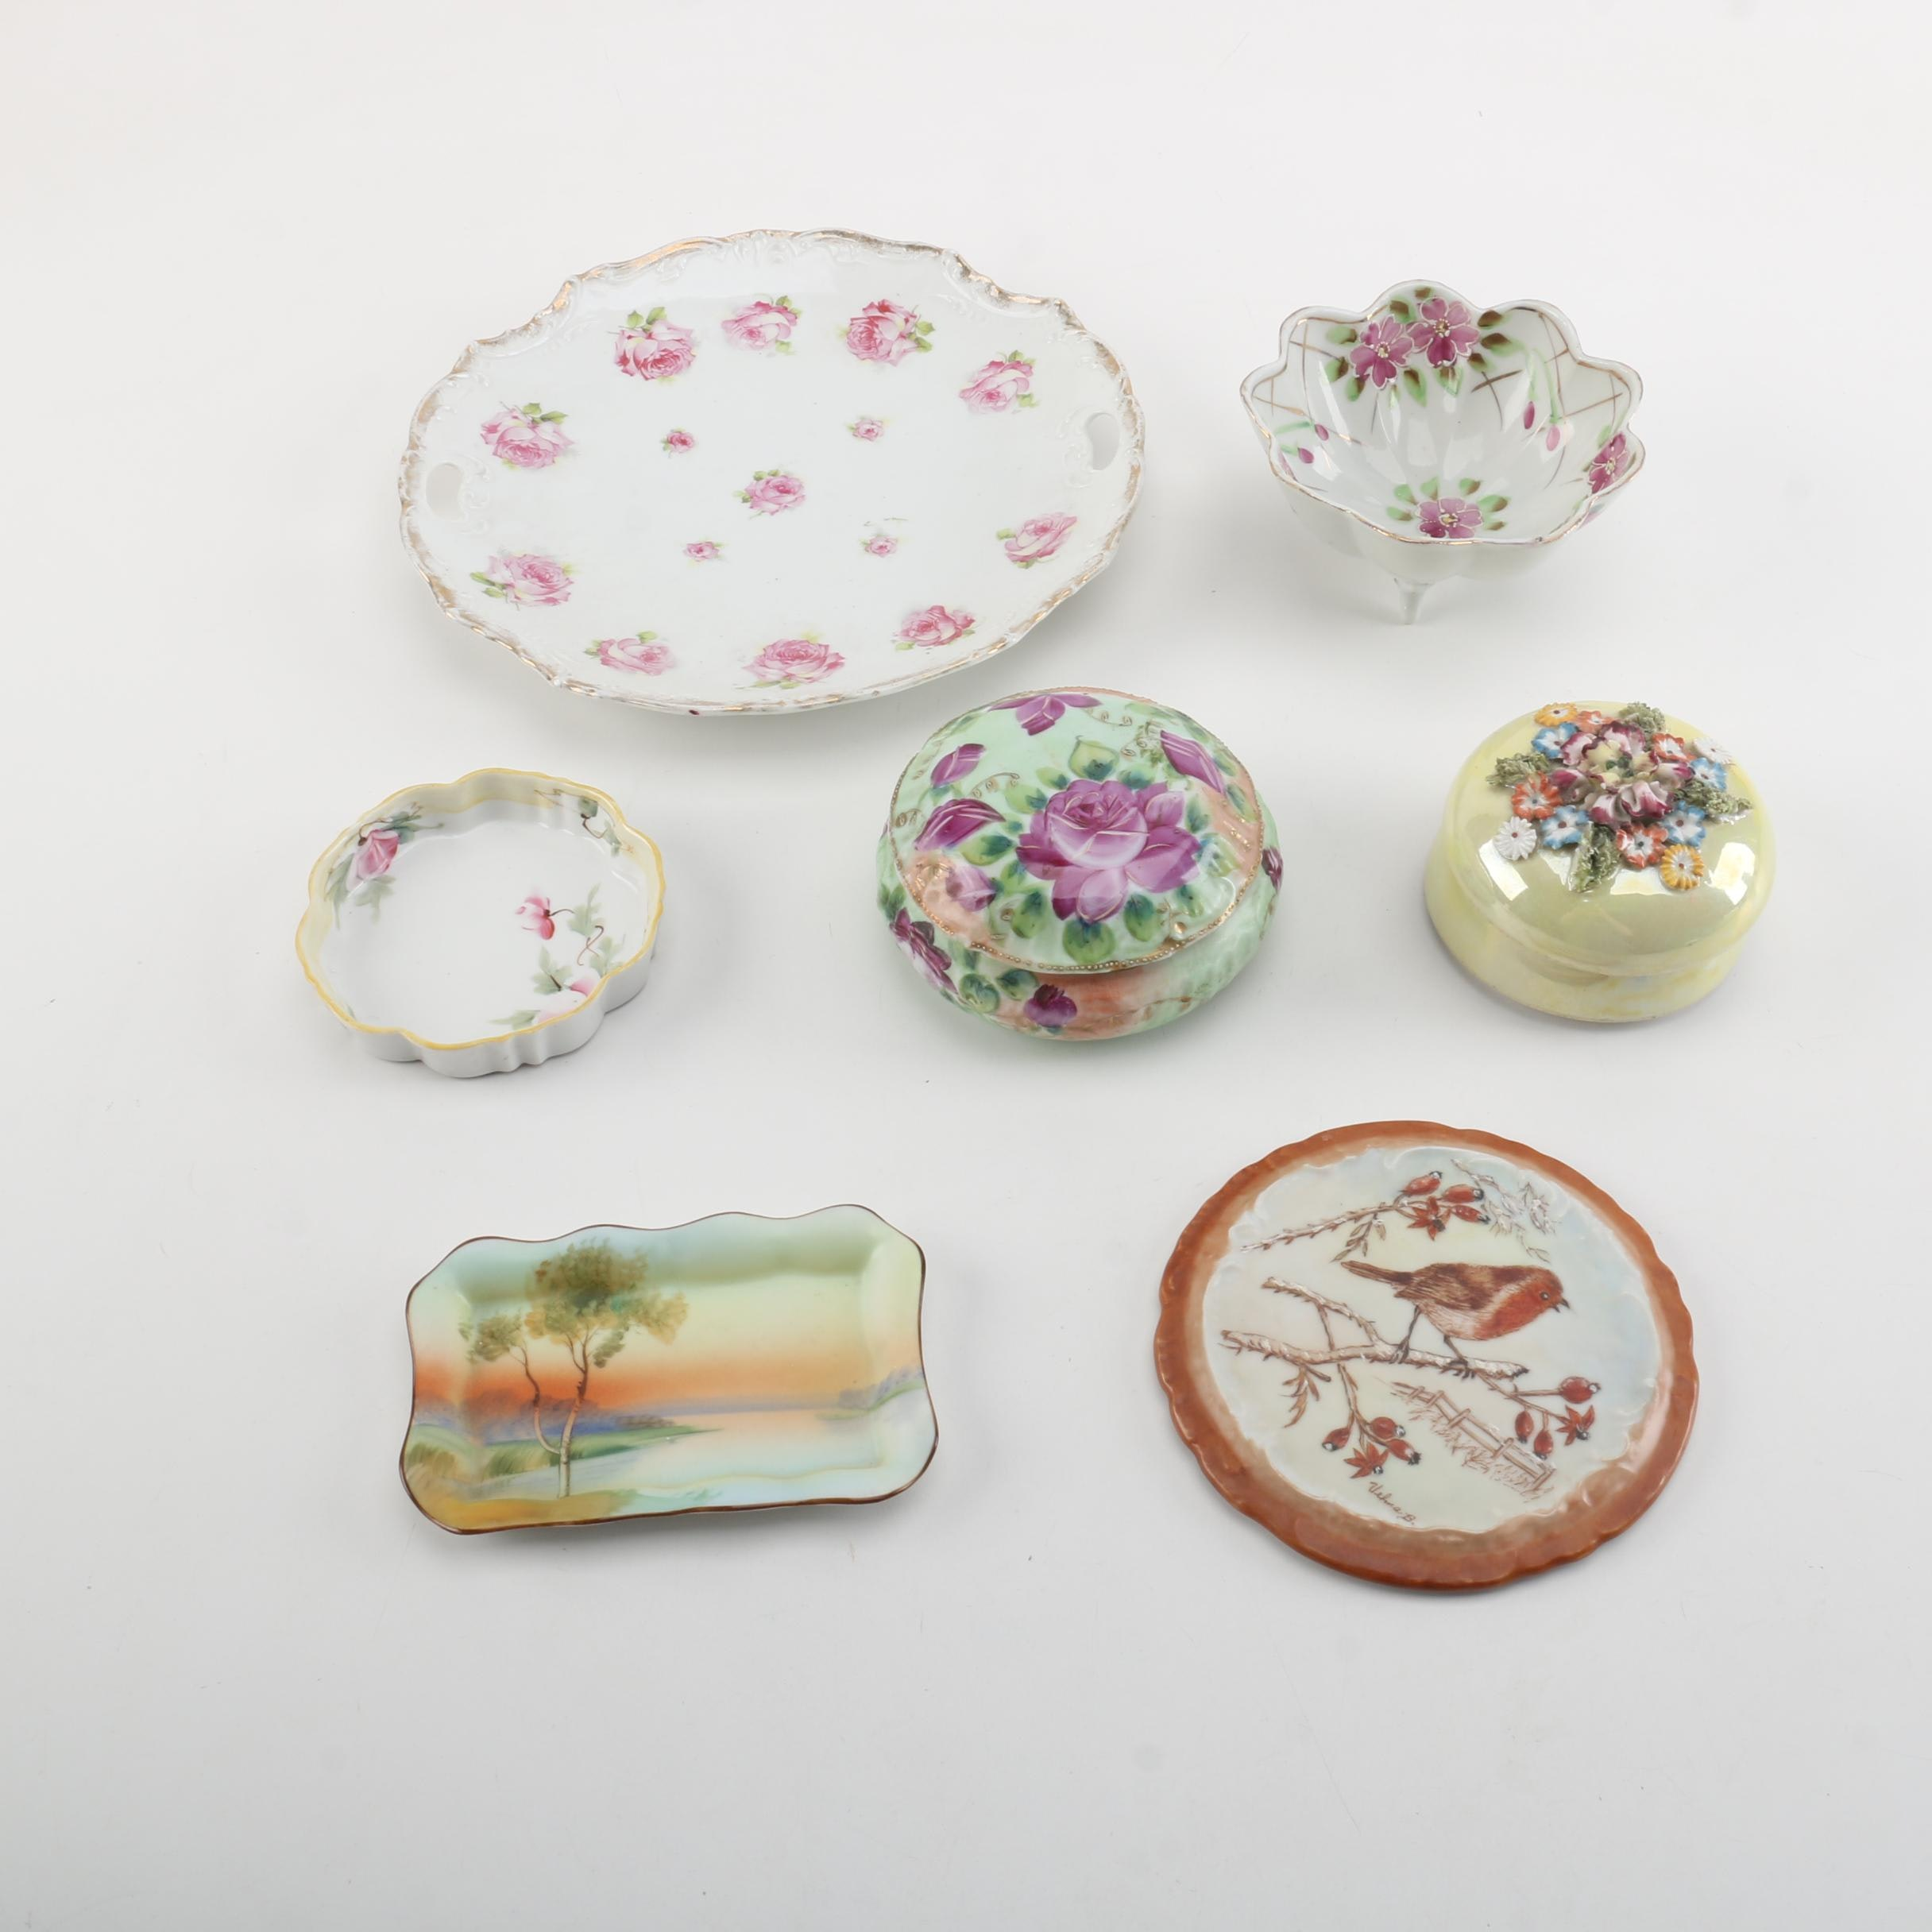 Porcelain Home Decor Featuring Hand Painted Nippon